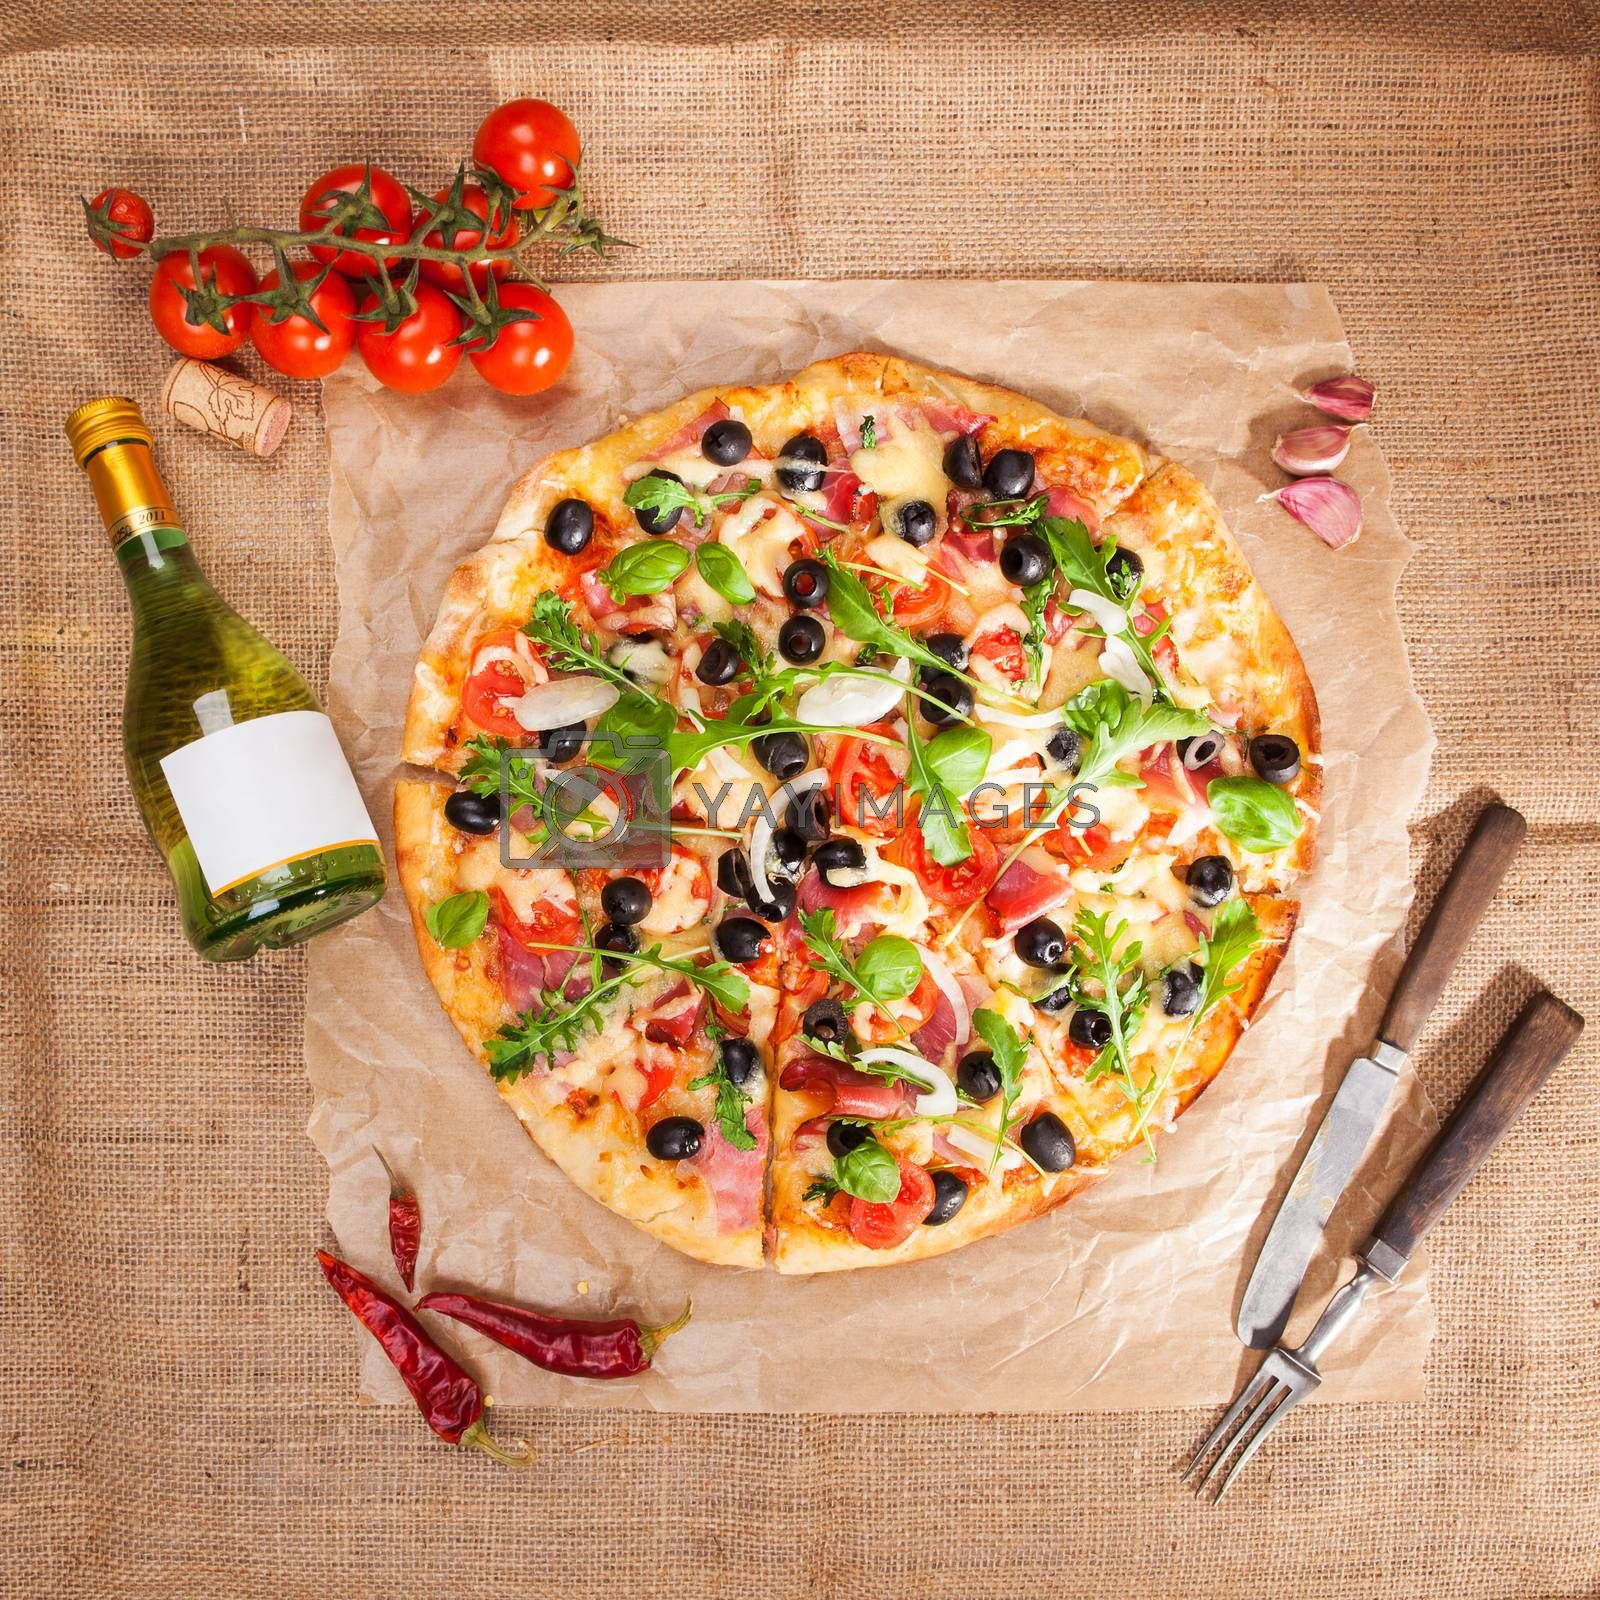 Delicious tasty pizza, fresh tomatoes, garlic, bottle of white wine and wooden cutlery on brown background, top view. Rustic country style italian eating concpept.